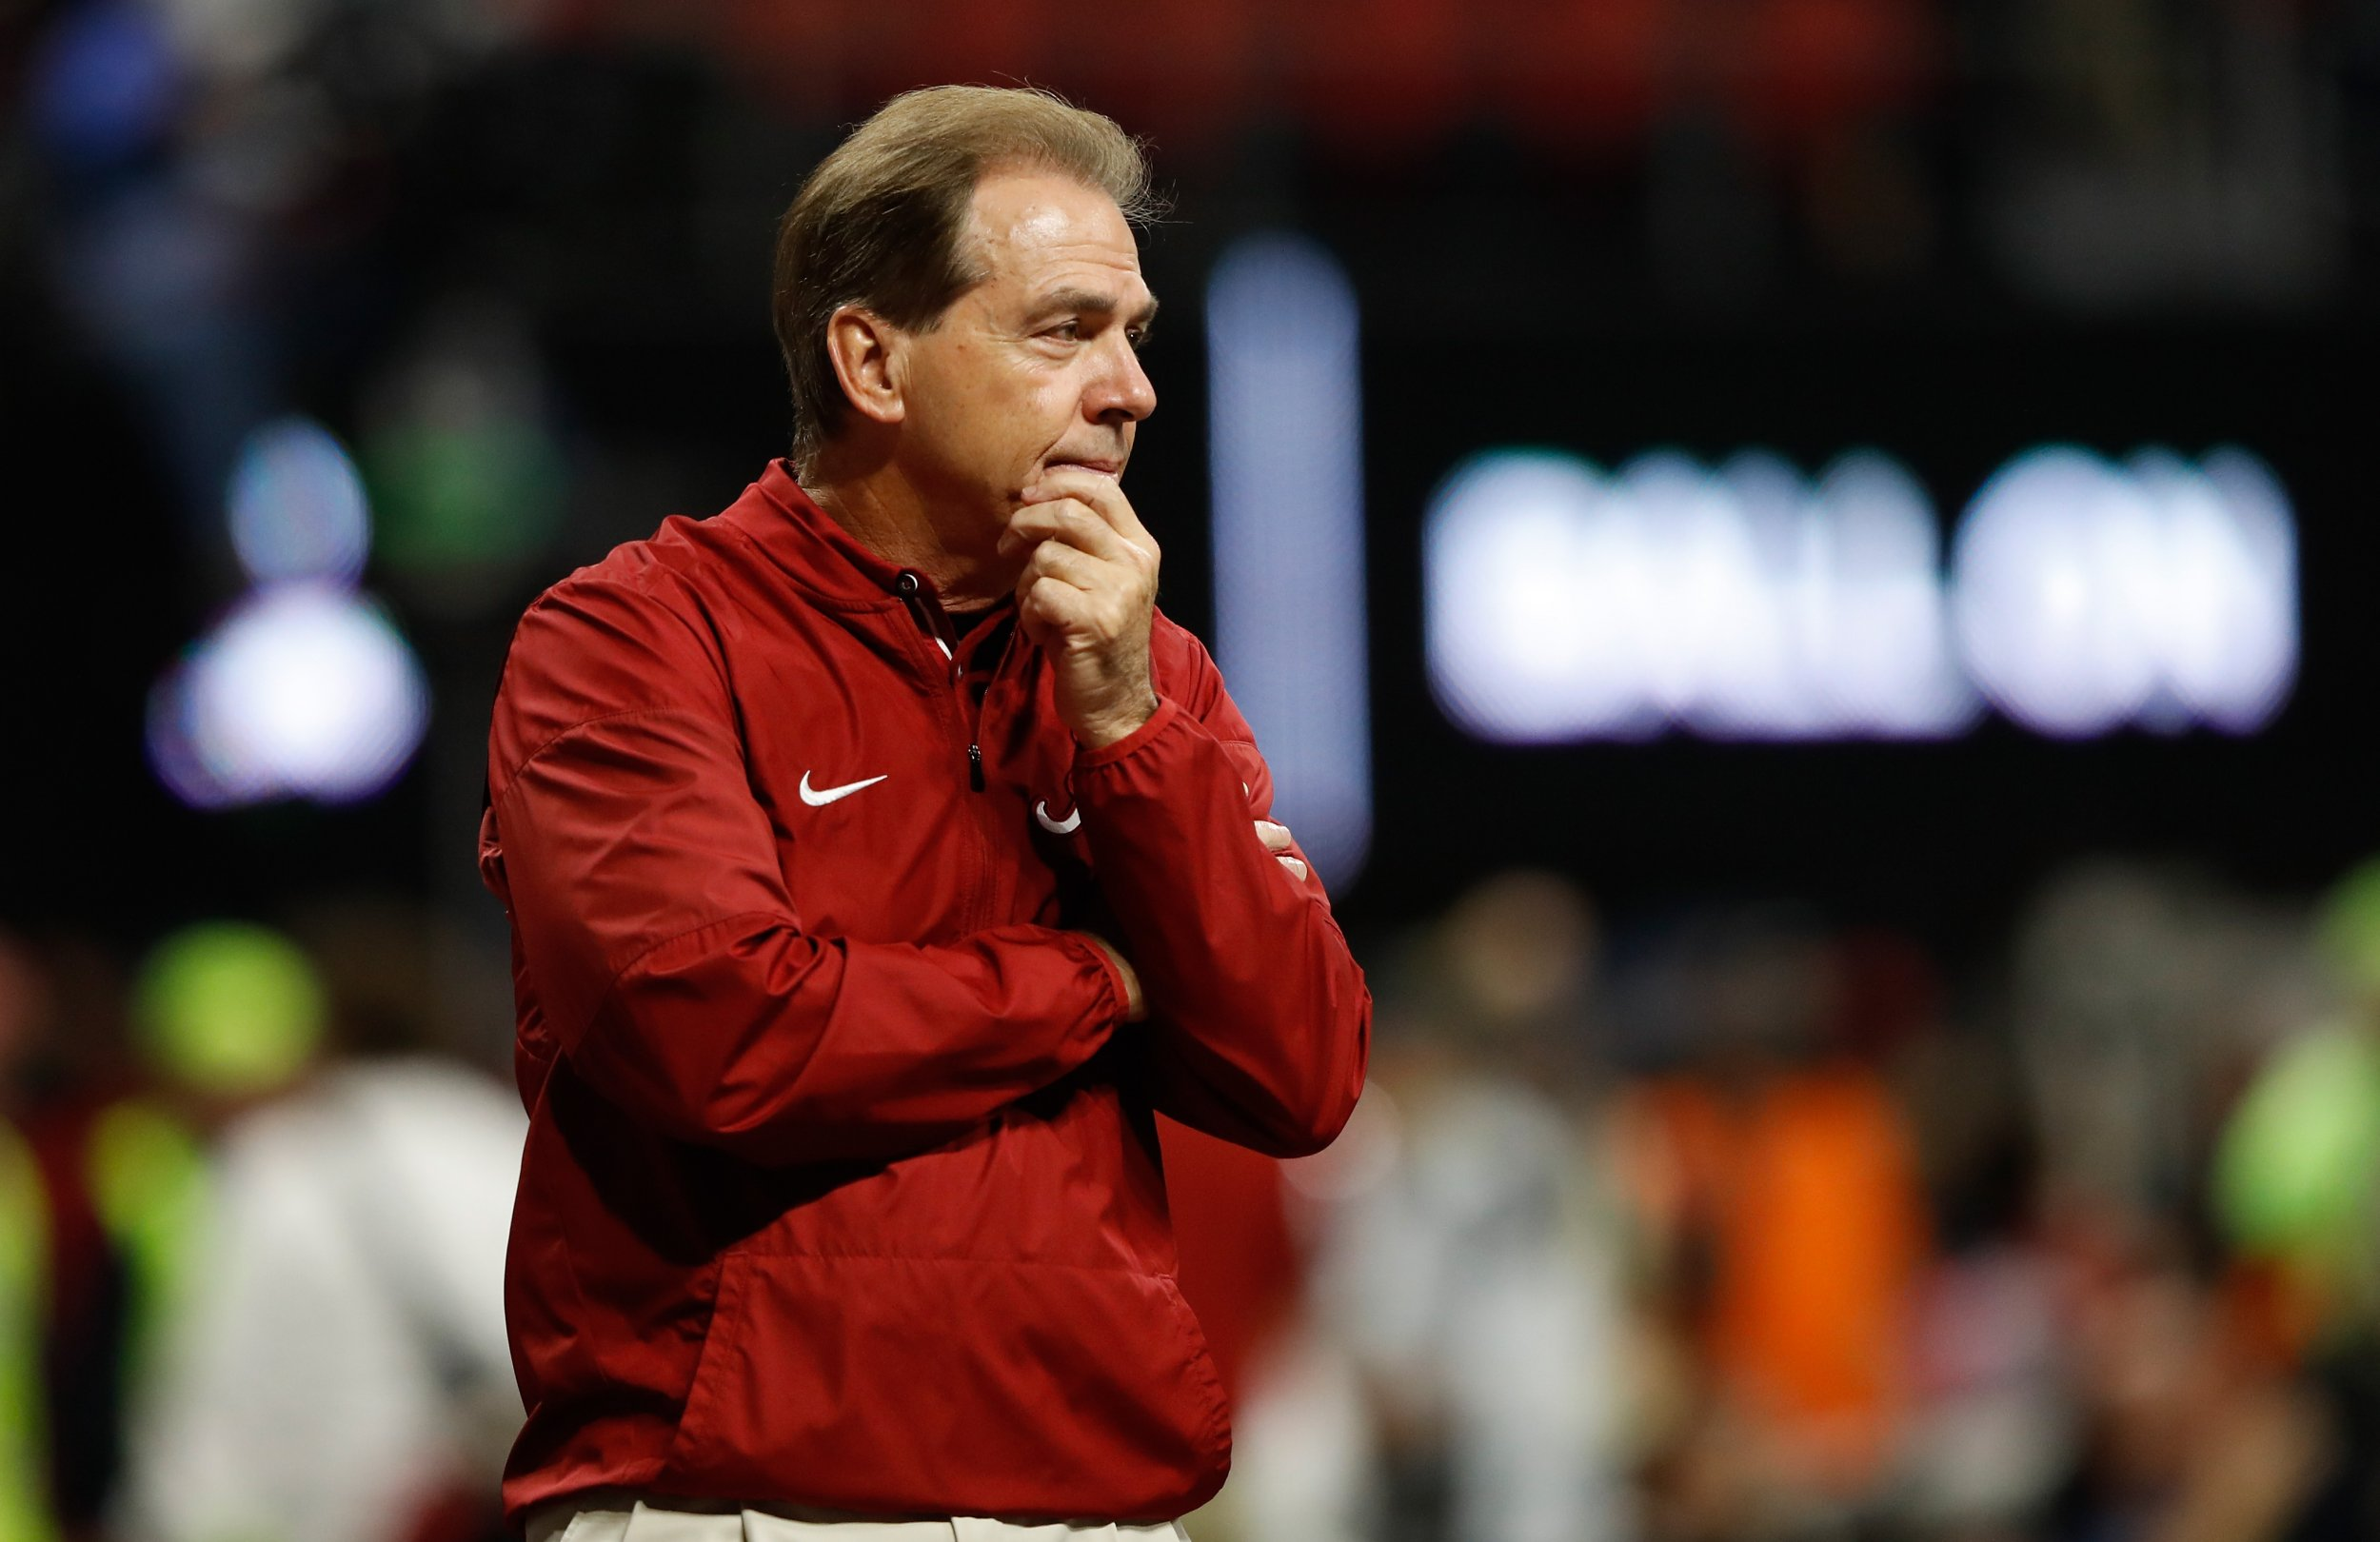 Is Nick Saban The Greatest College Coach Of All Time